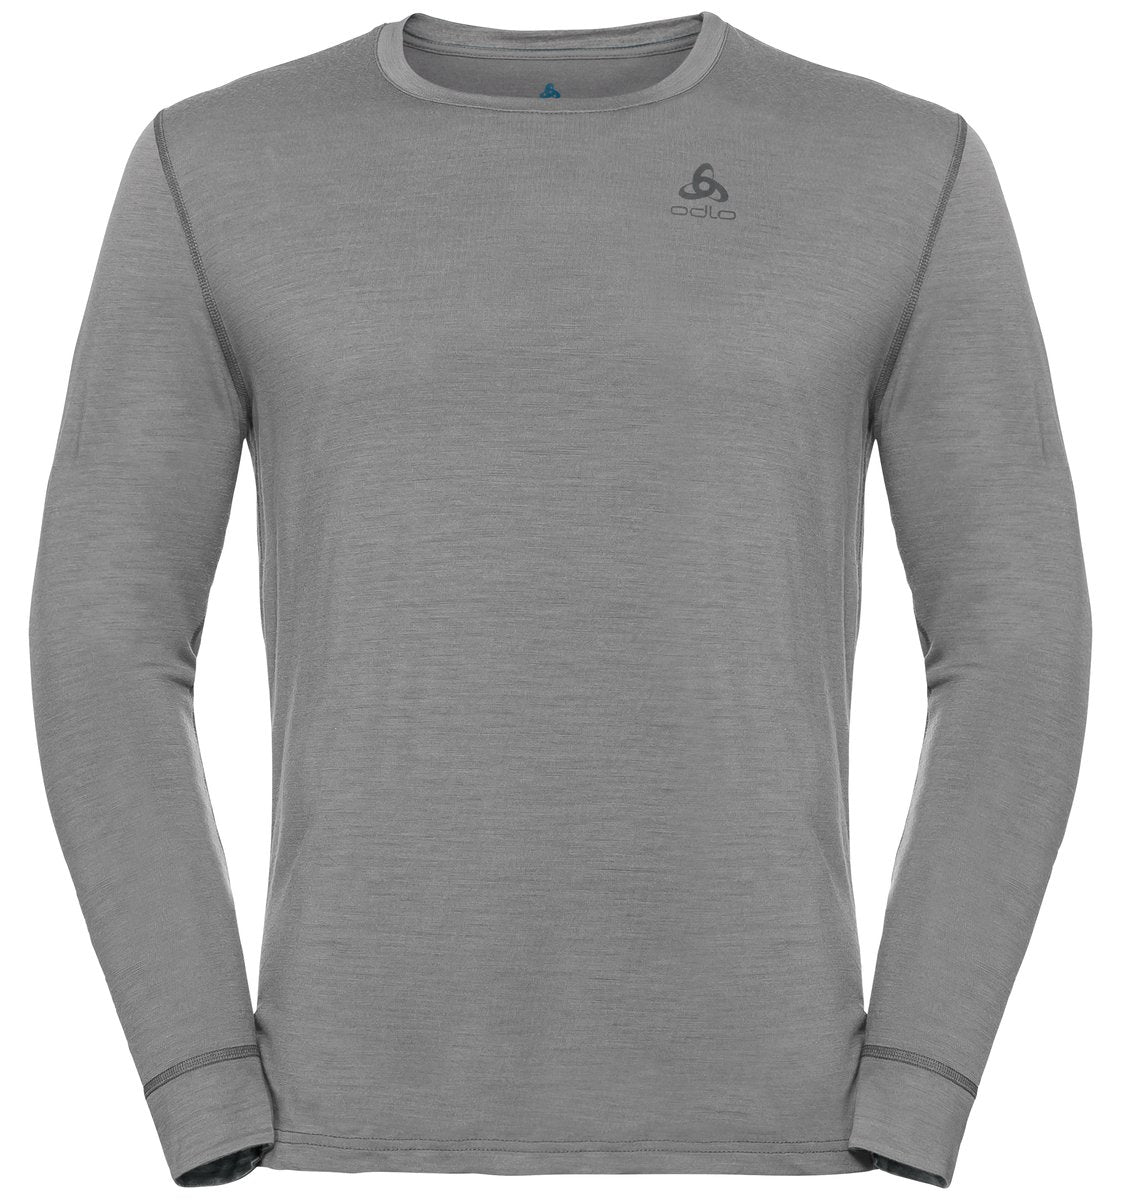 Odlo Men's NATURAL 100% MERINO WARM Long-Sleeve Baselayer Top